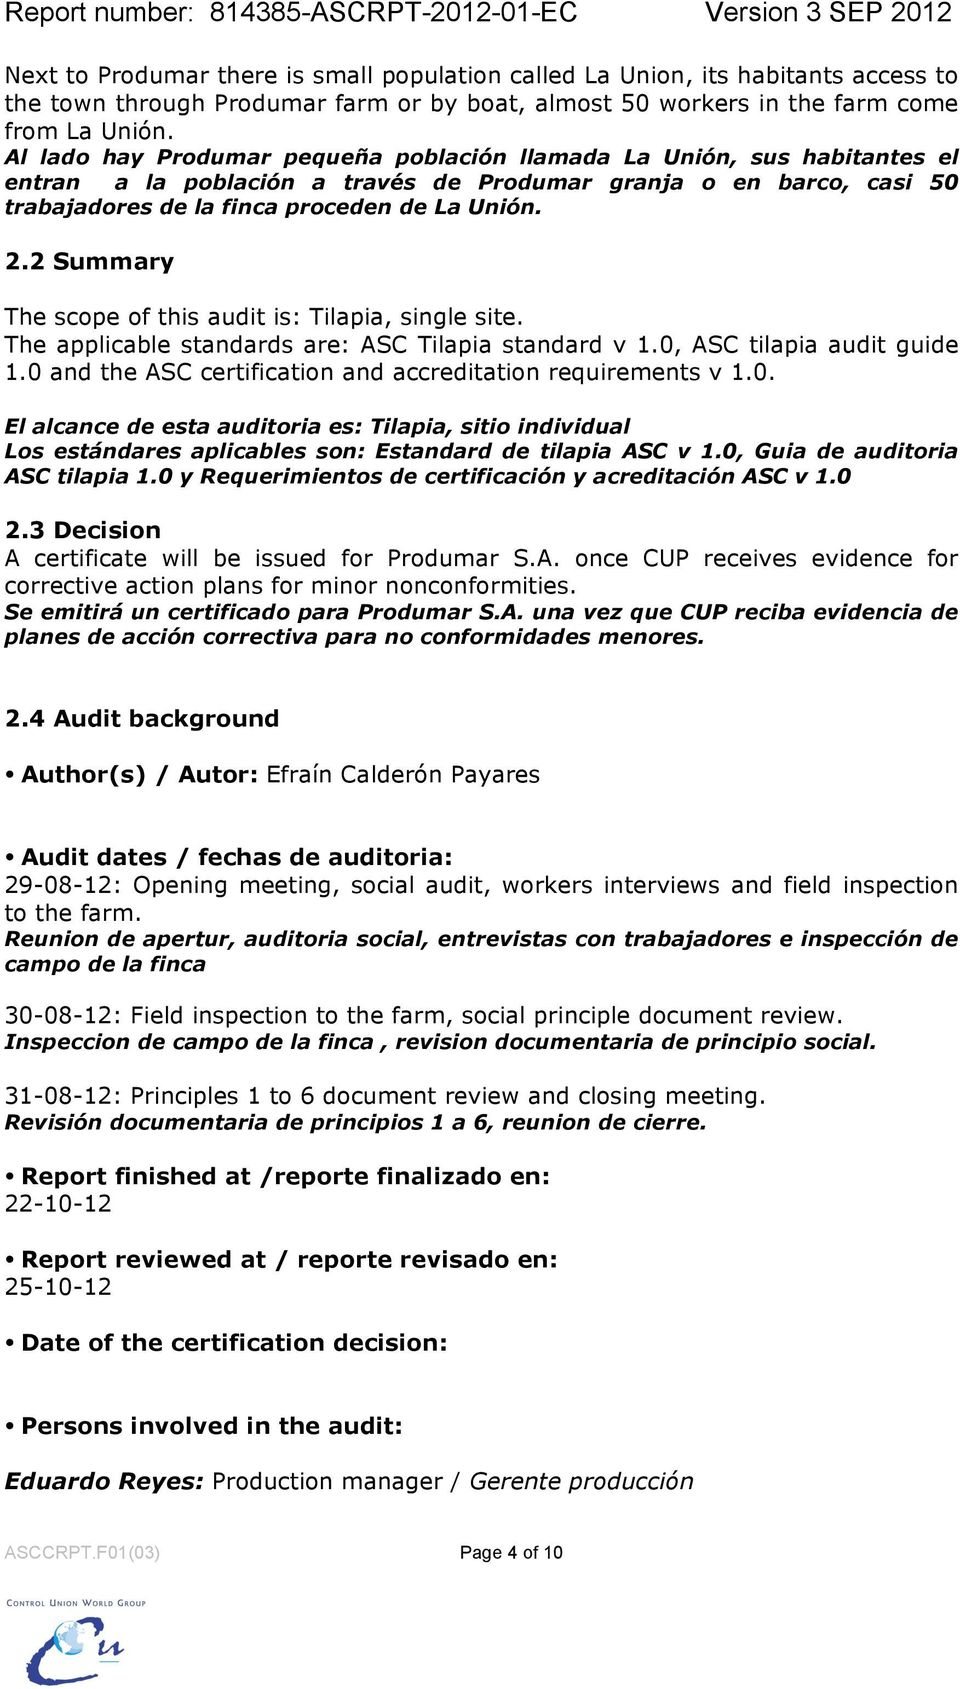 2 Summary The scope of this audit is: Tilapia, single site. The applicable standards are: ASC Tilapia standard v 1.0, ASC tilapia audit guide 1.